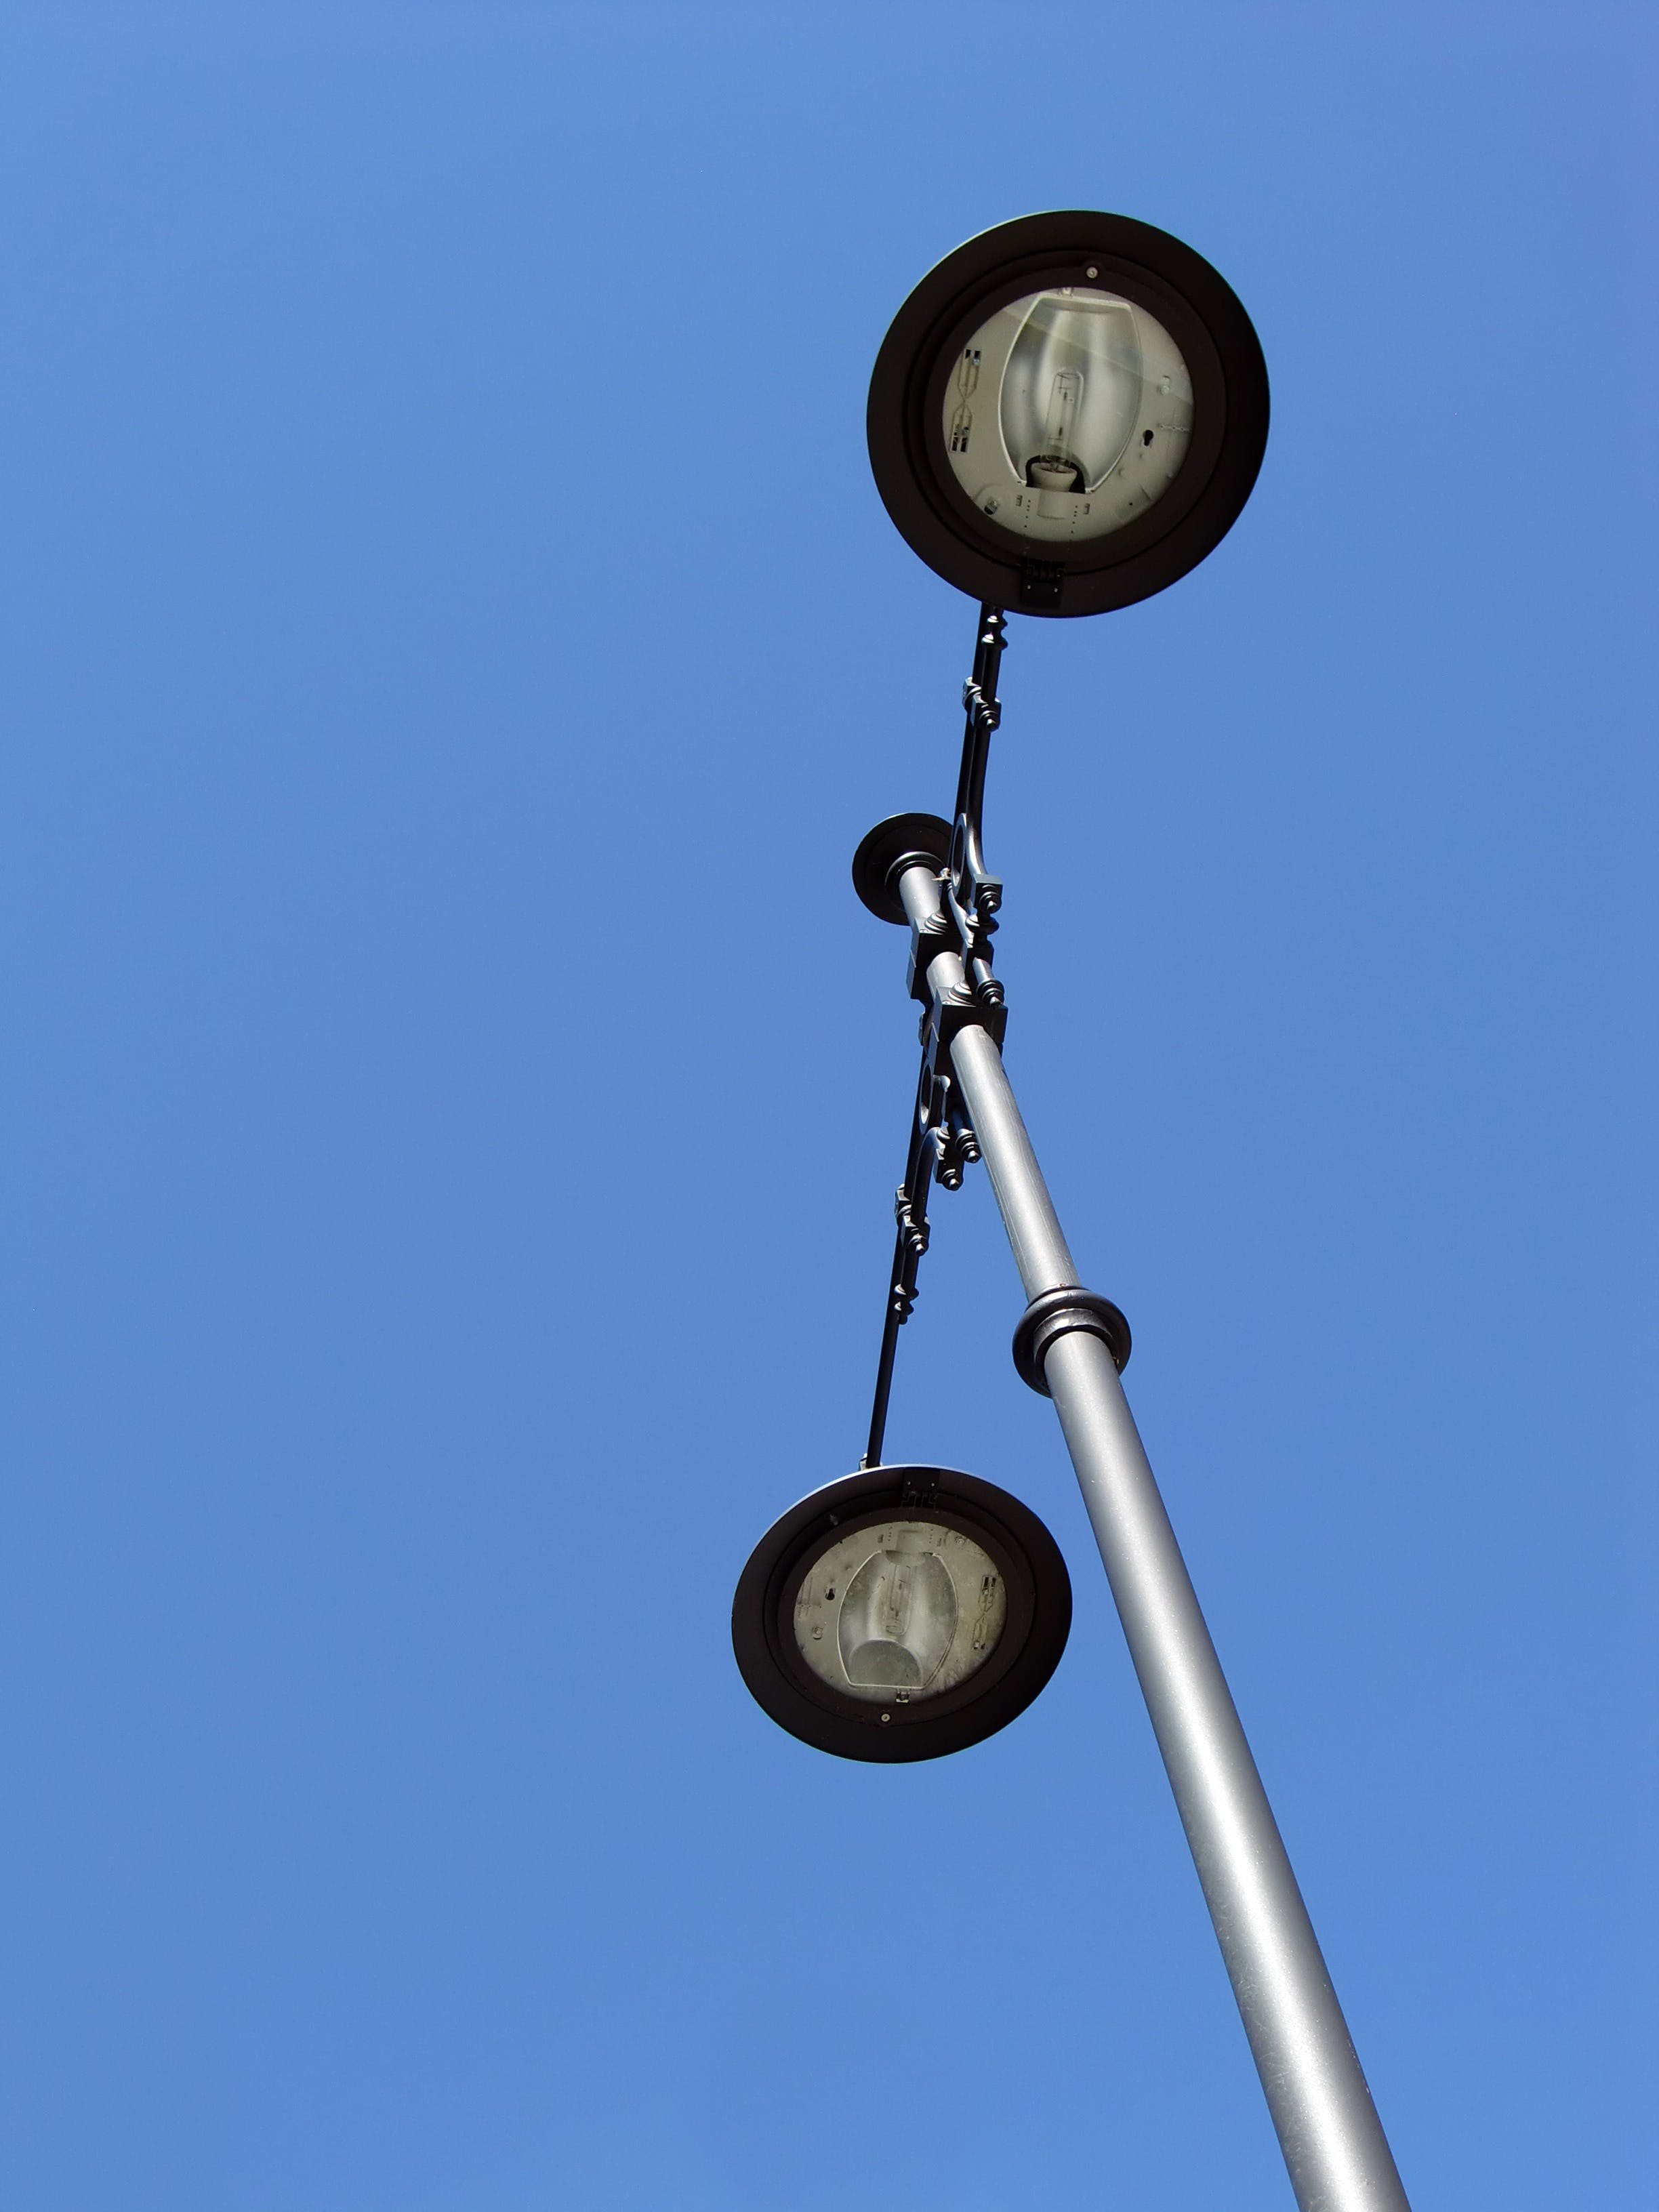 Black and Silver Street Lamp Post